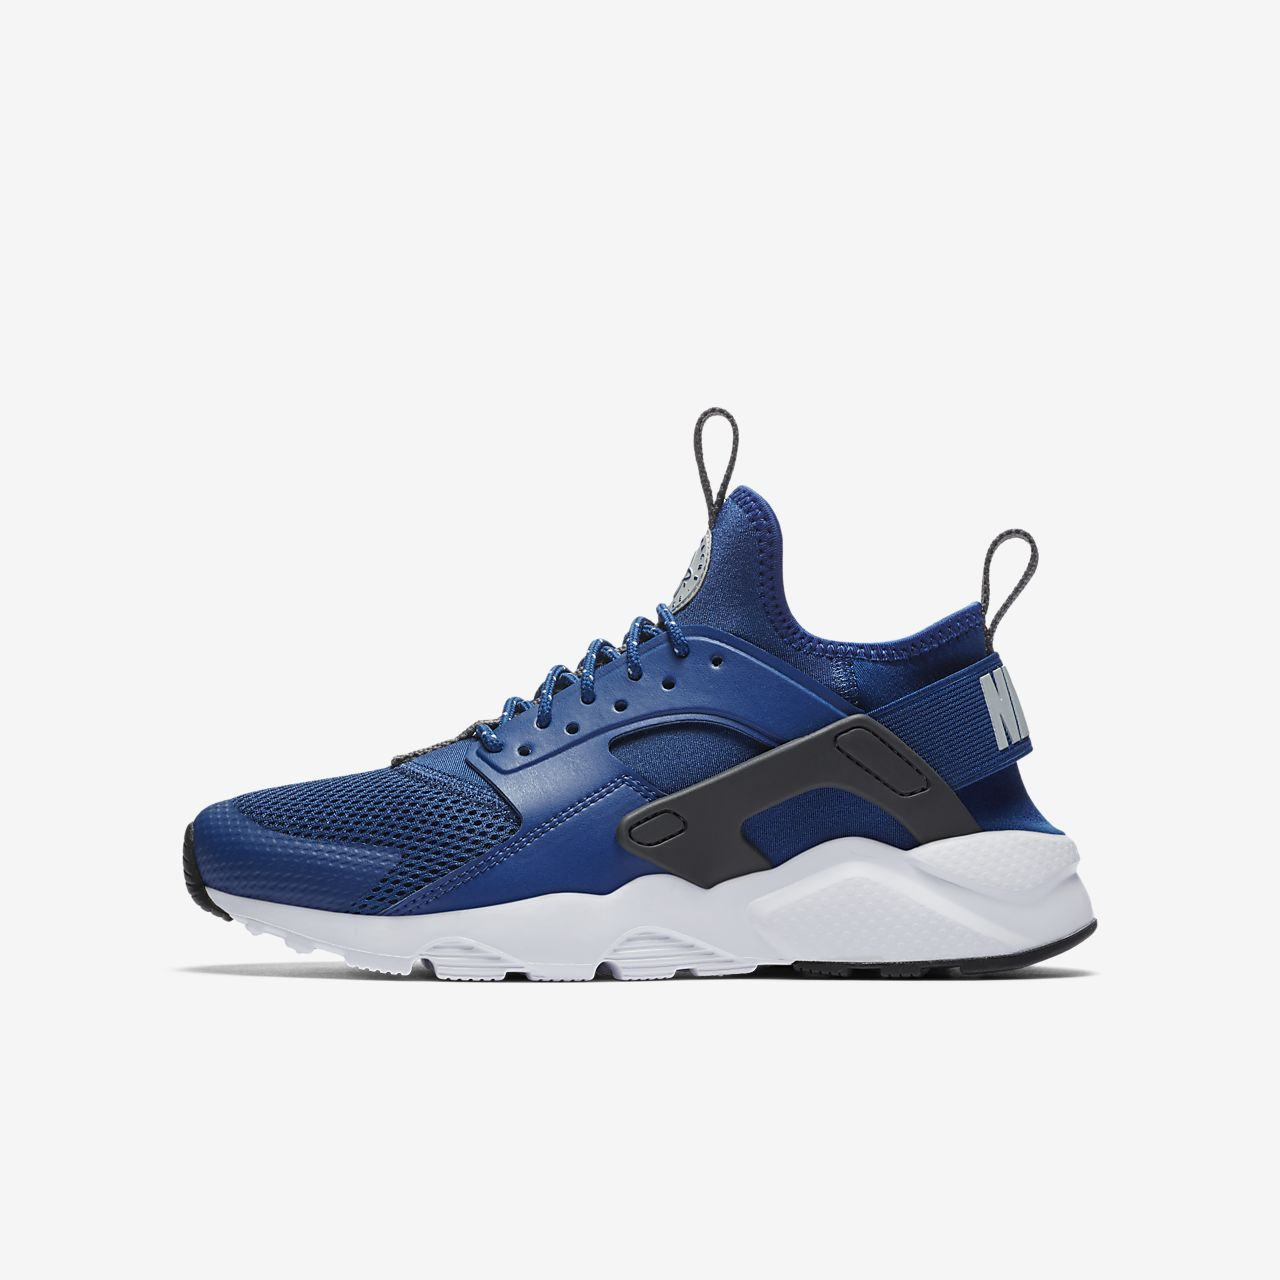 ... Nike Air Huarache Ultra Big Kids' Shoe